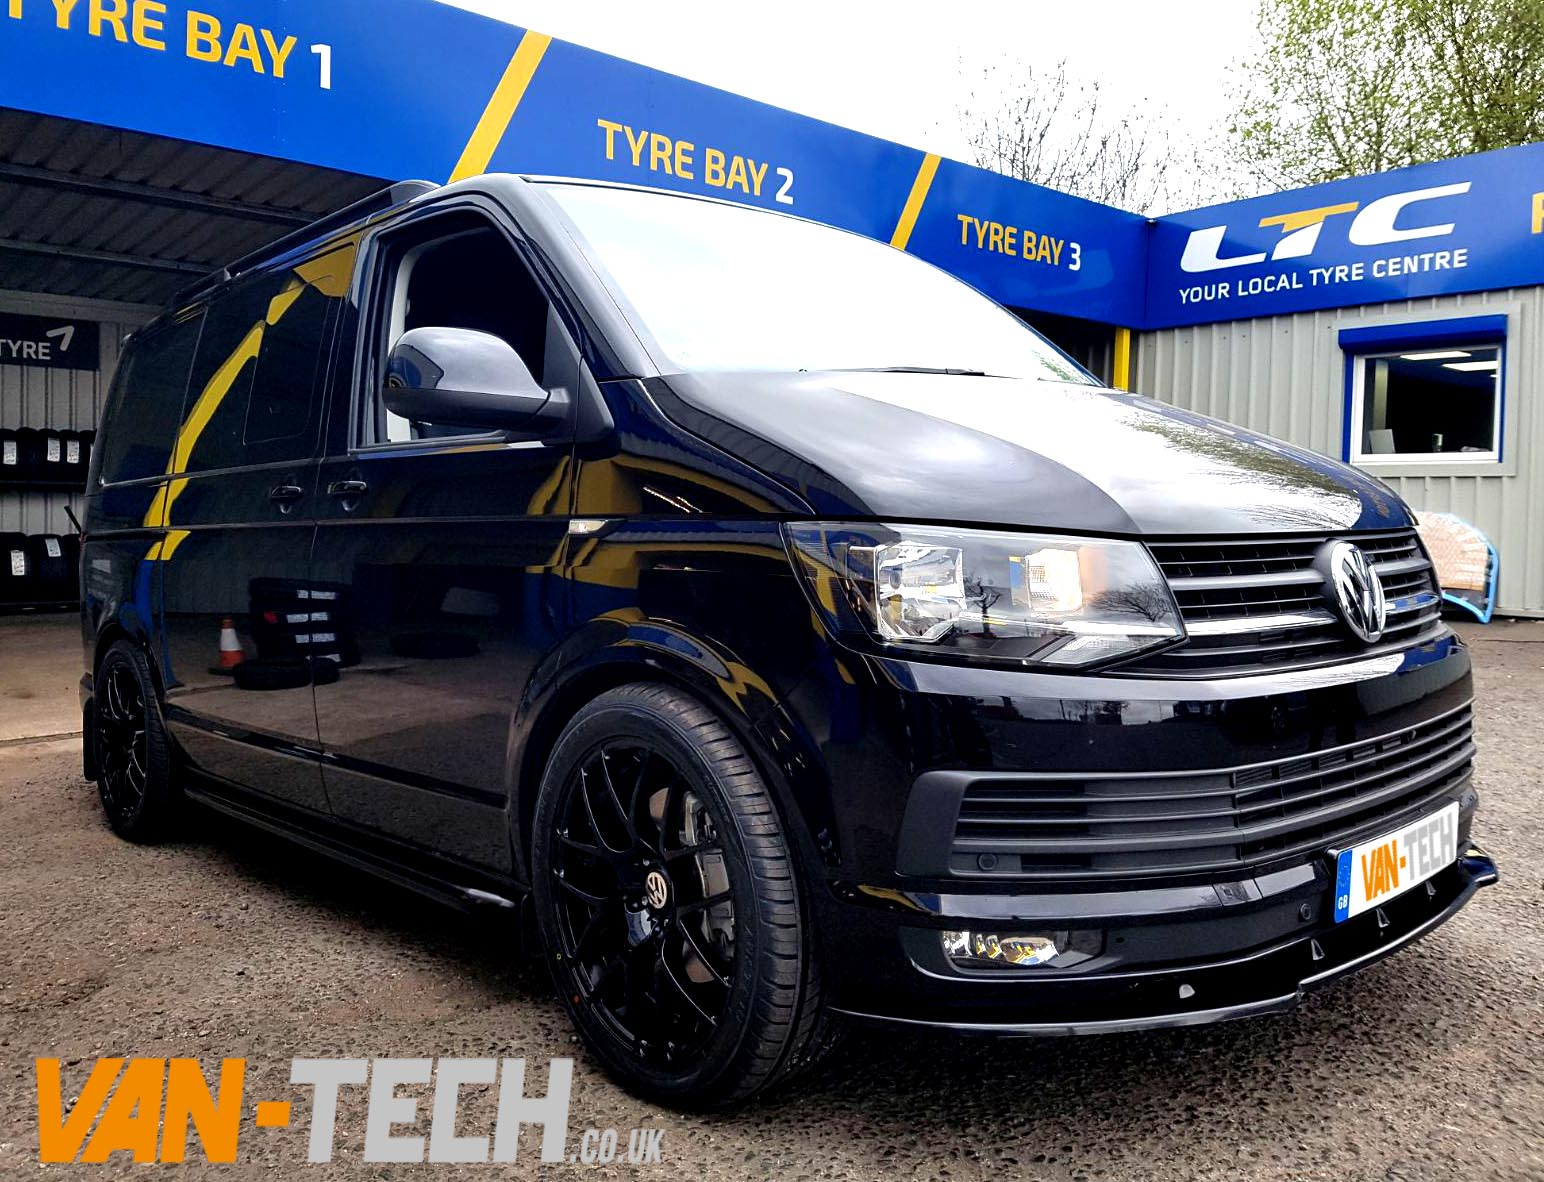 volkswagen vw transporter t6 van front lower splitter van tech. Black Bedroom Furniture Sets. Home Design Ideas